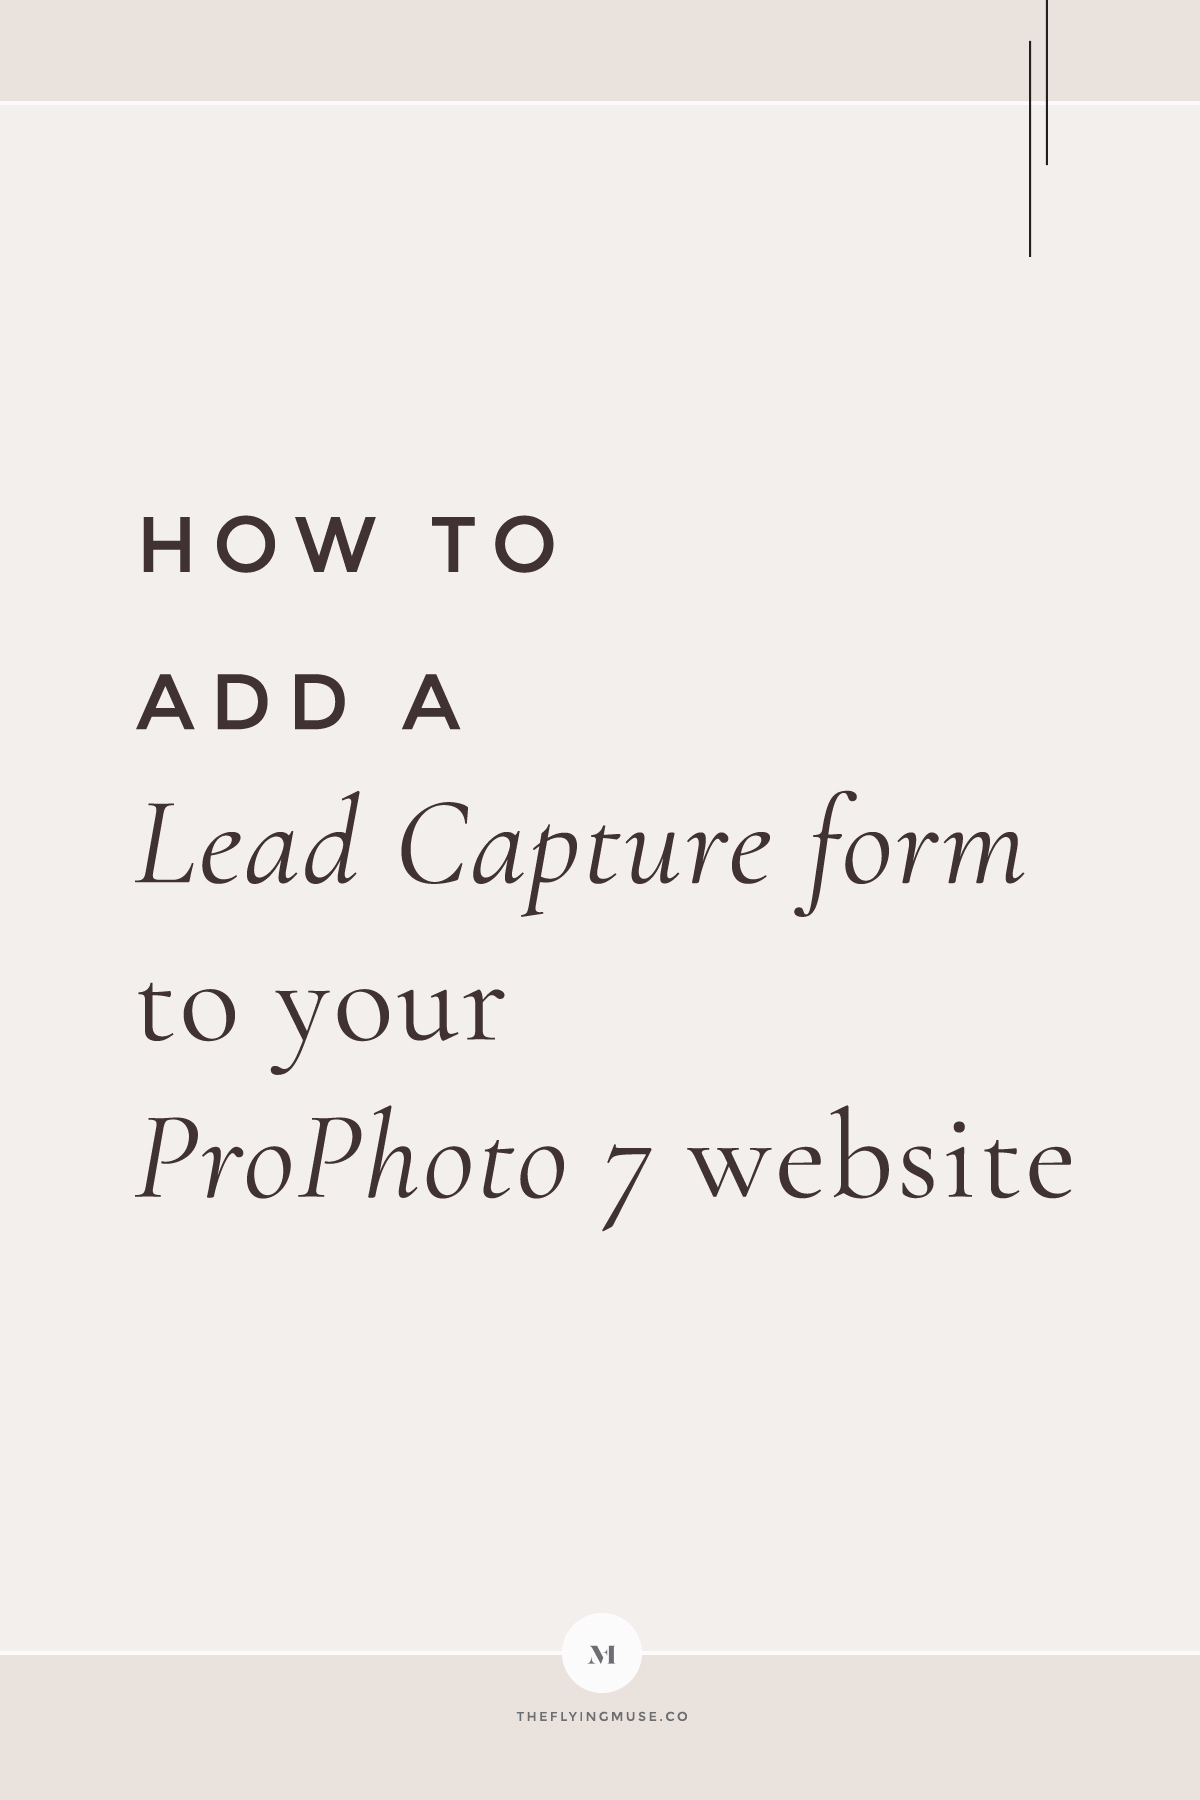 How to add a Lead Capture form to your ProPhoto 7 website